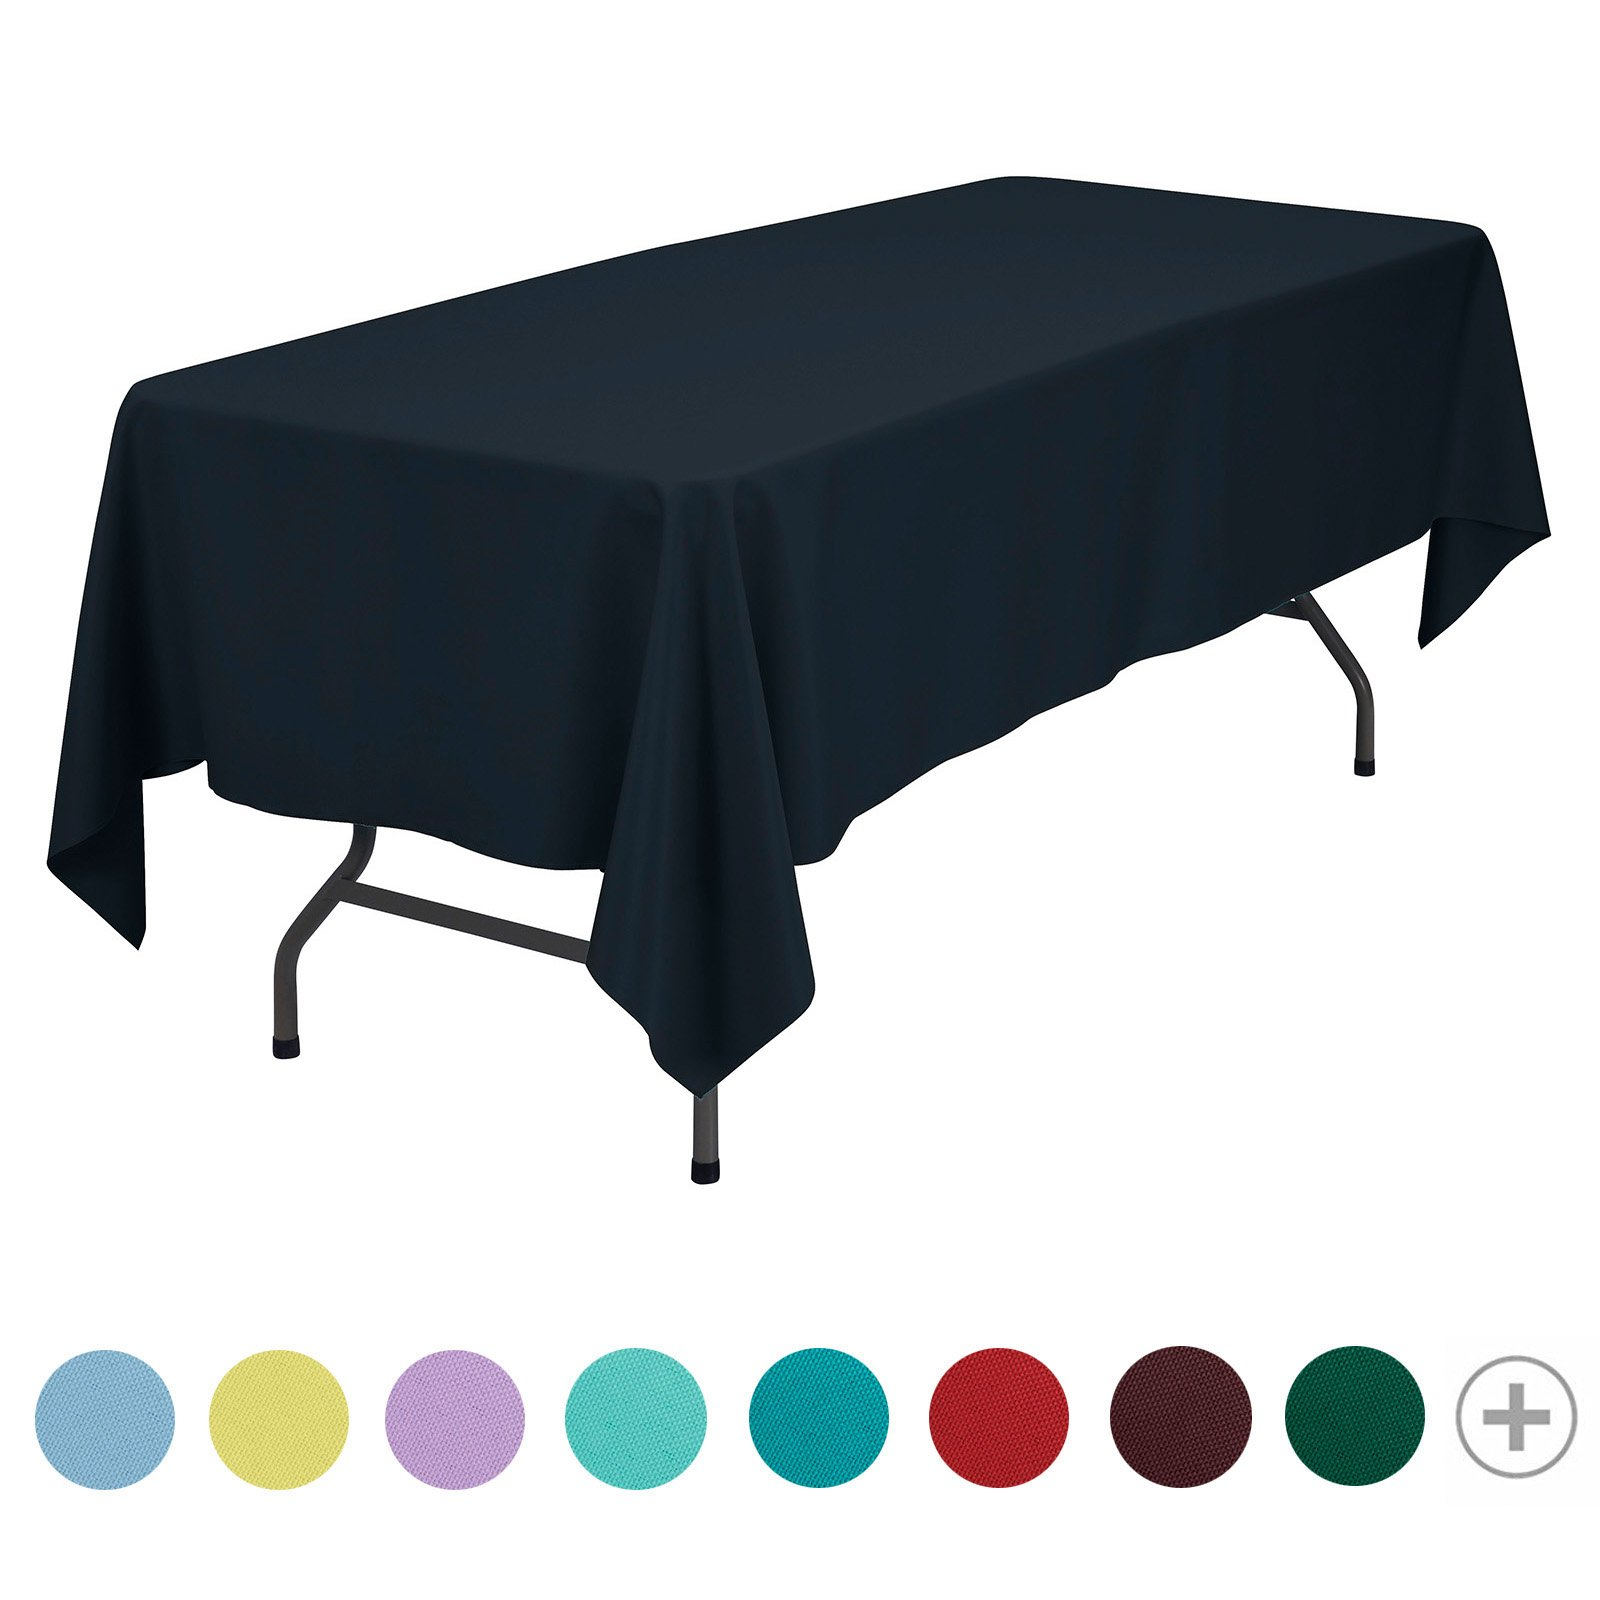 VEEYOO 70 x 120 inch Rectangular Solid Polyester Tablecloth for Home Wedding Restaurant Party Buffet Table Picnic, Navy